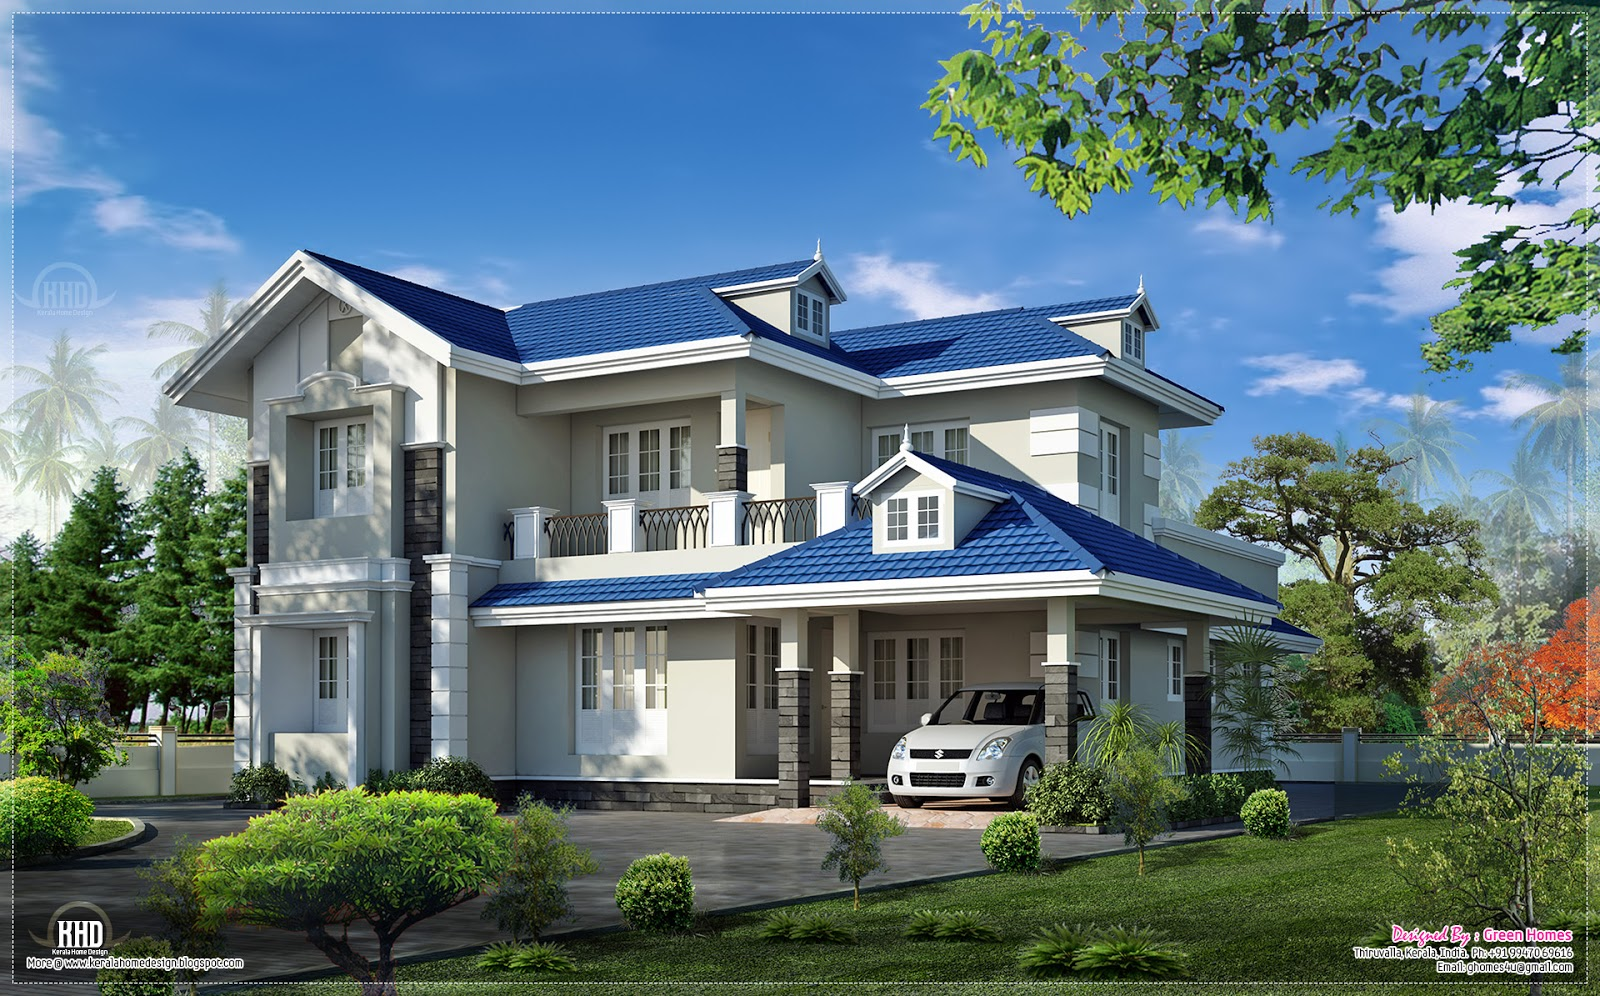 Beautiful 4 bedroom villa exterior kerala home design for Beautiful villas images